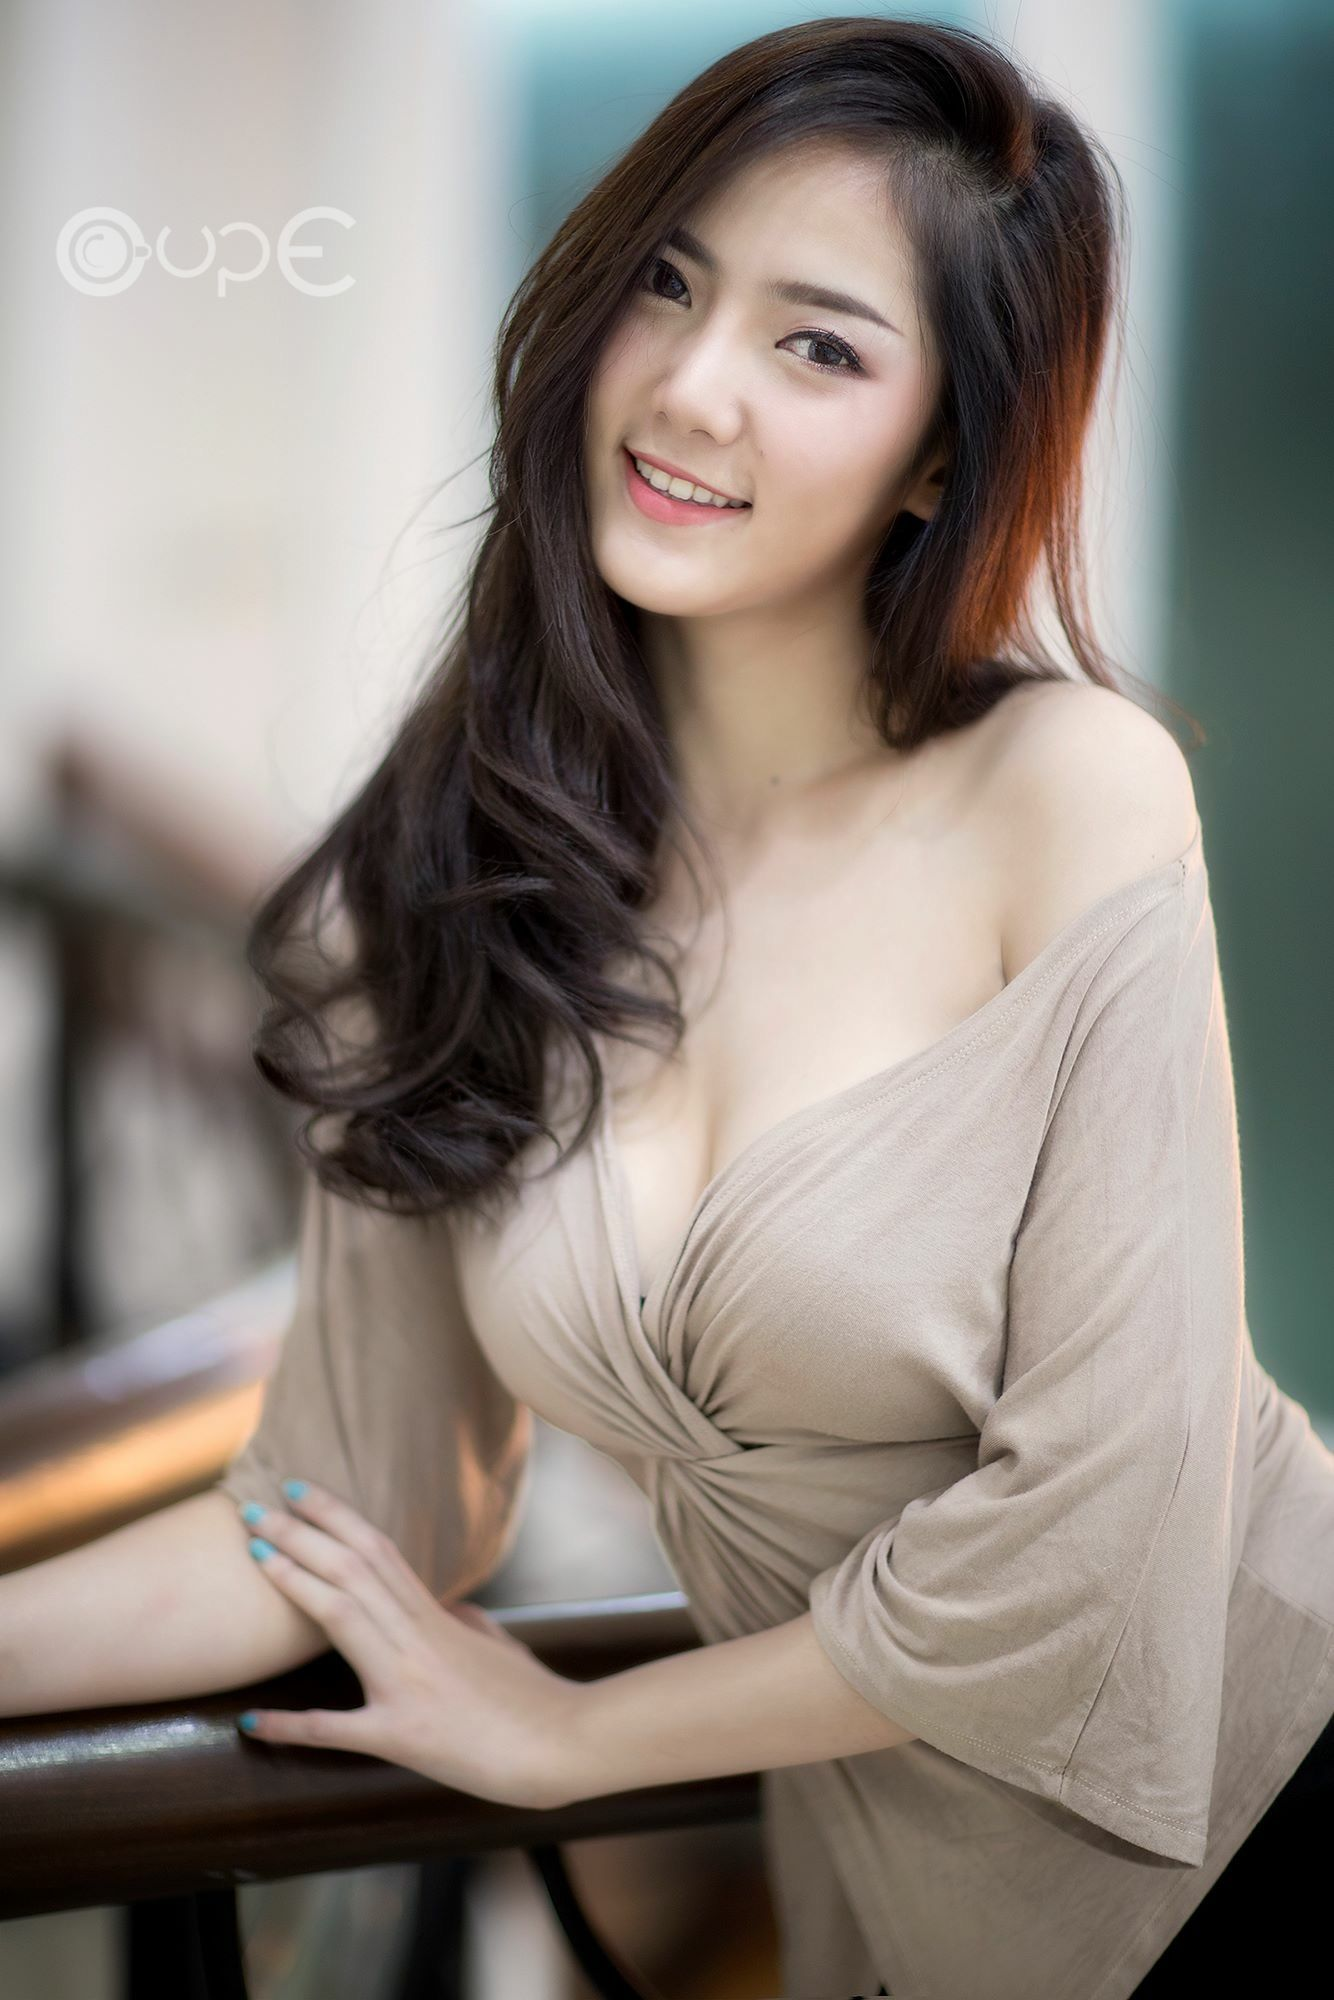 The Asian Woman 15